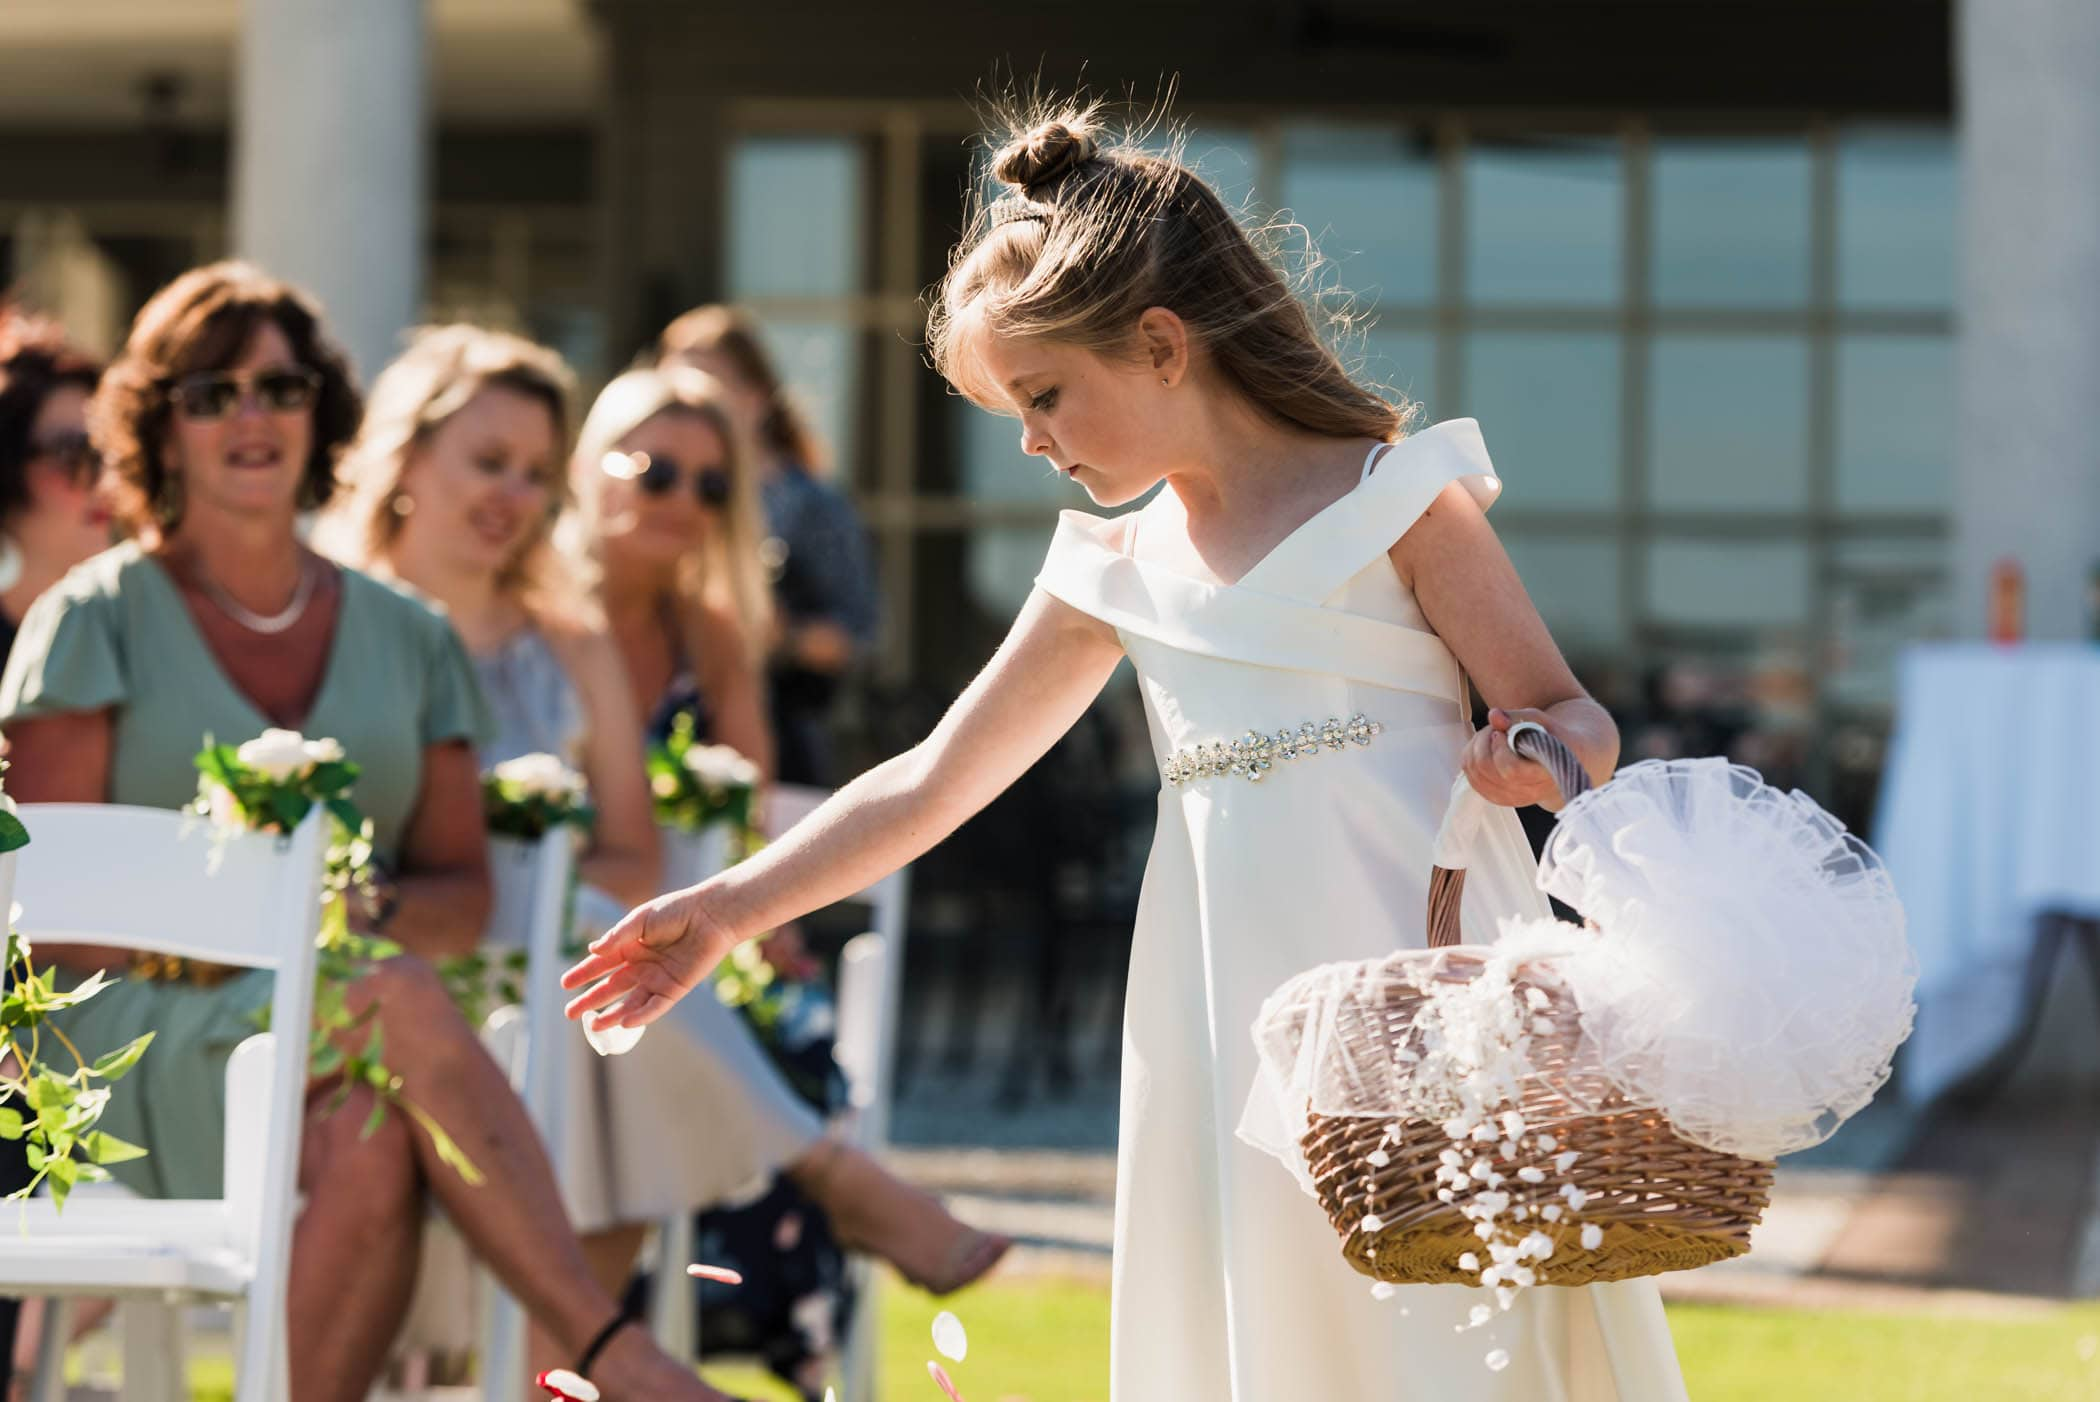 Flower girl throwing flower petals during wedding ceremony by Susan DeLoach Photography SC wedding photographers